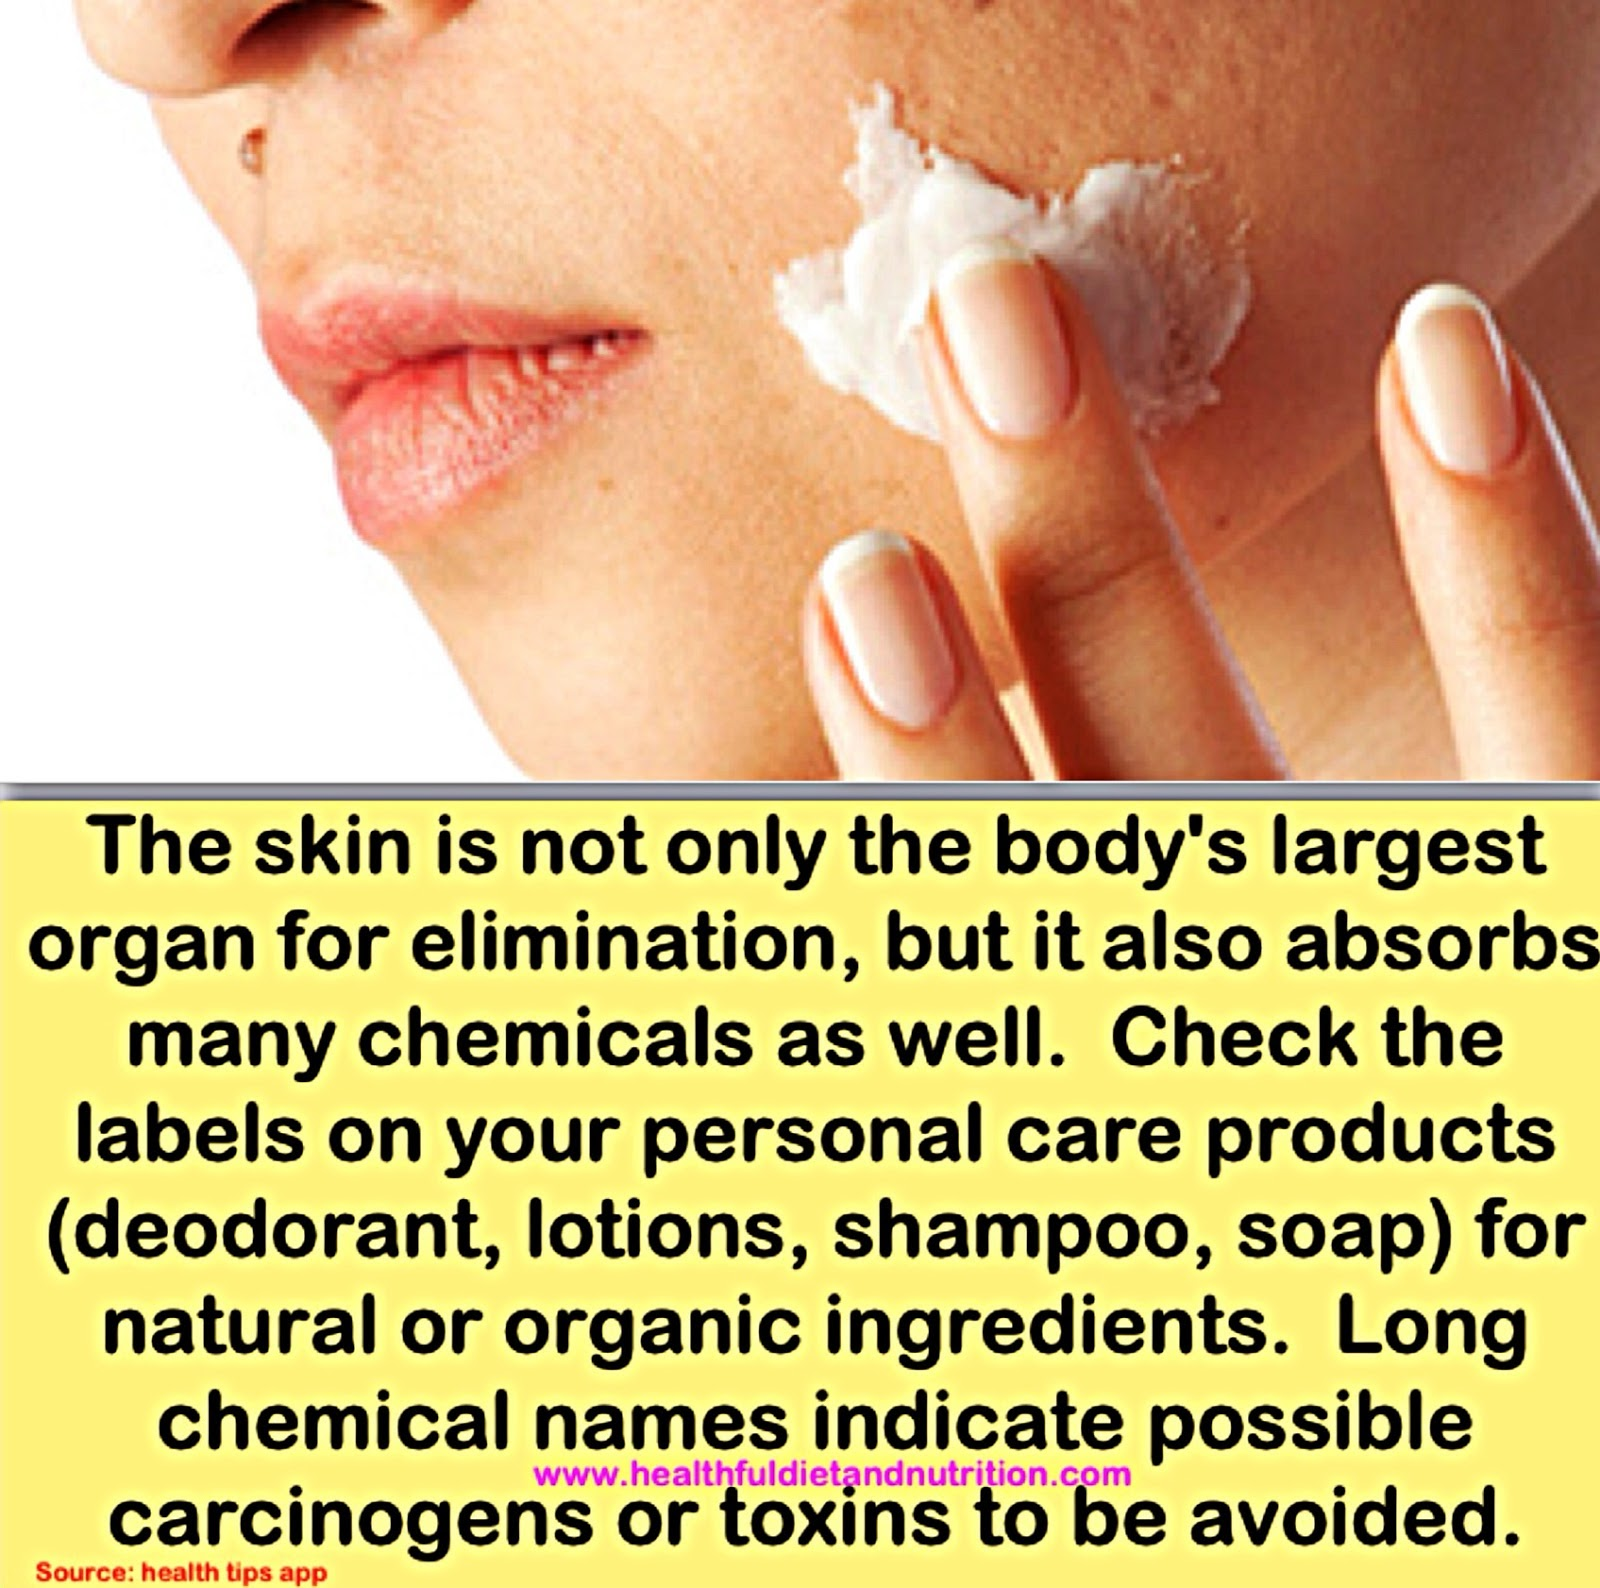 Use Natural or Organic Skin Products